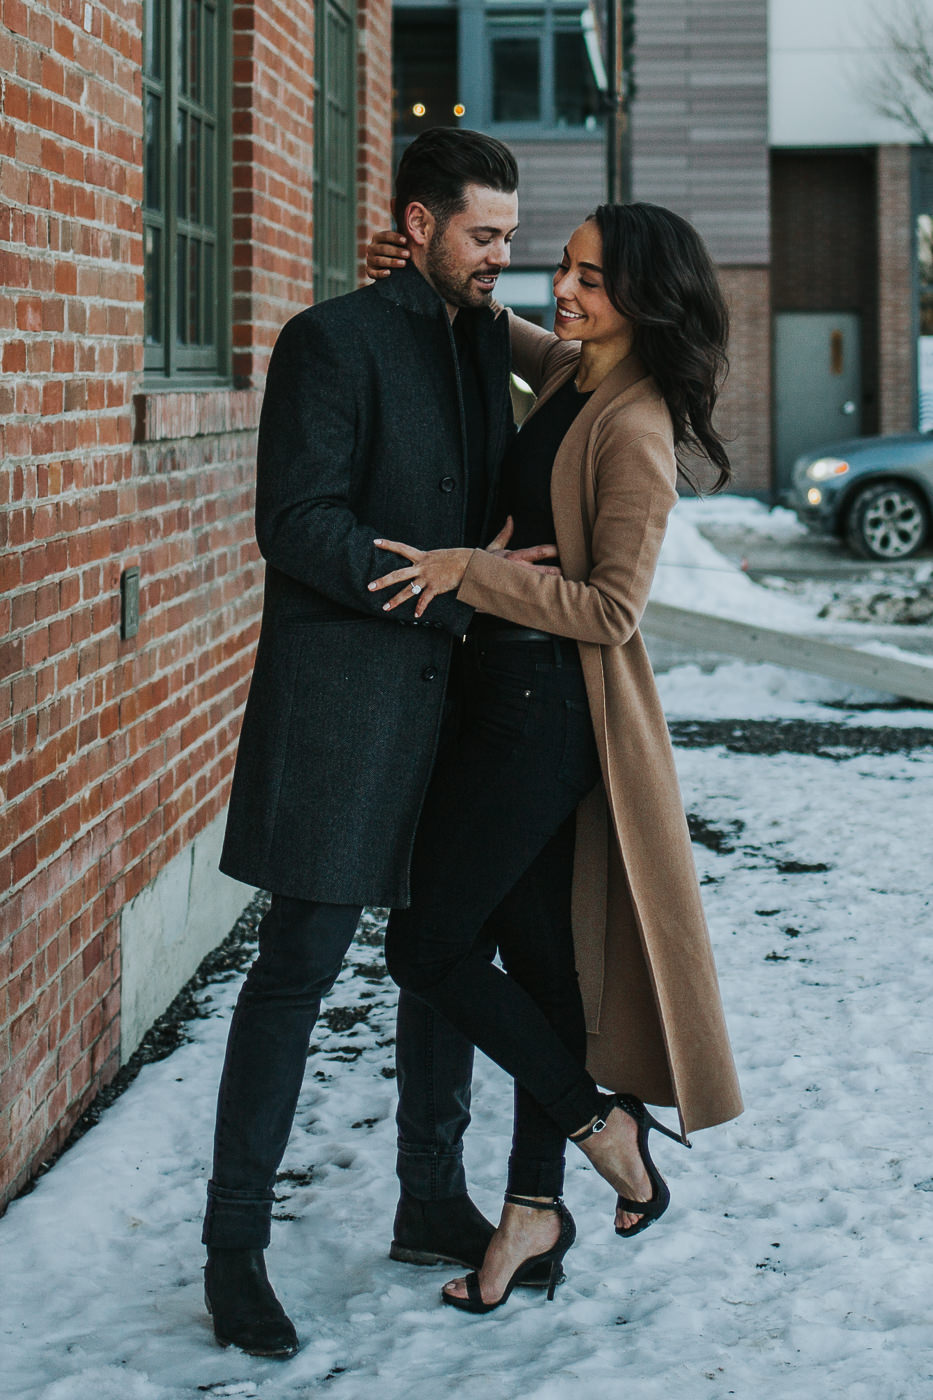 Winter engagement session in downtown Calgary